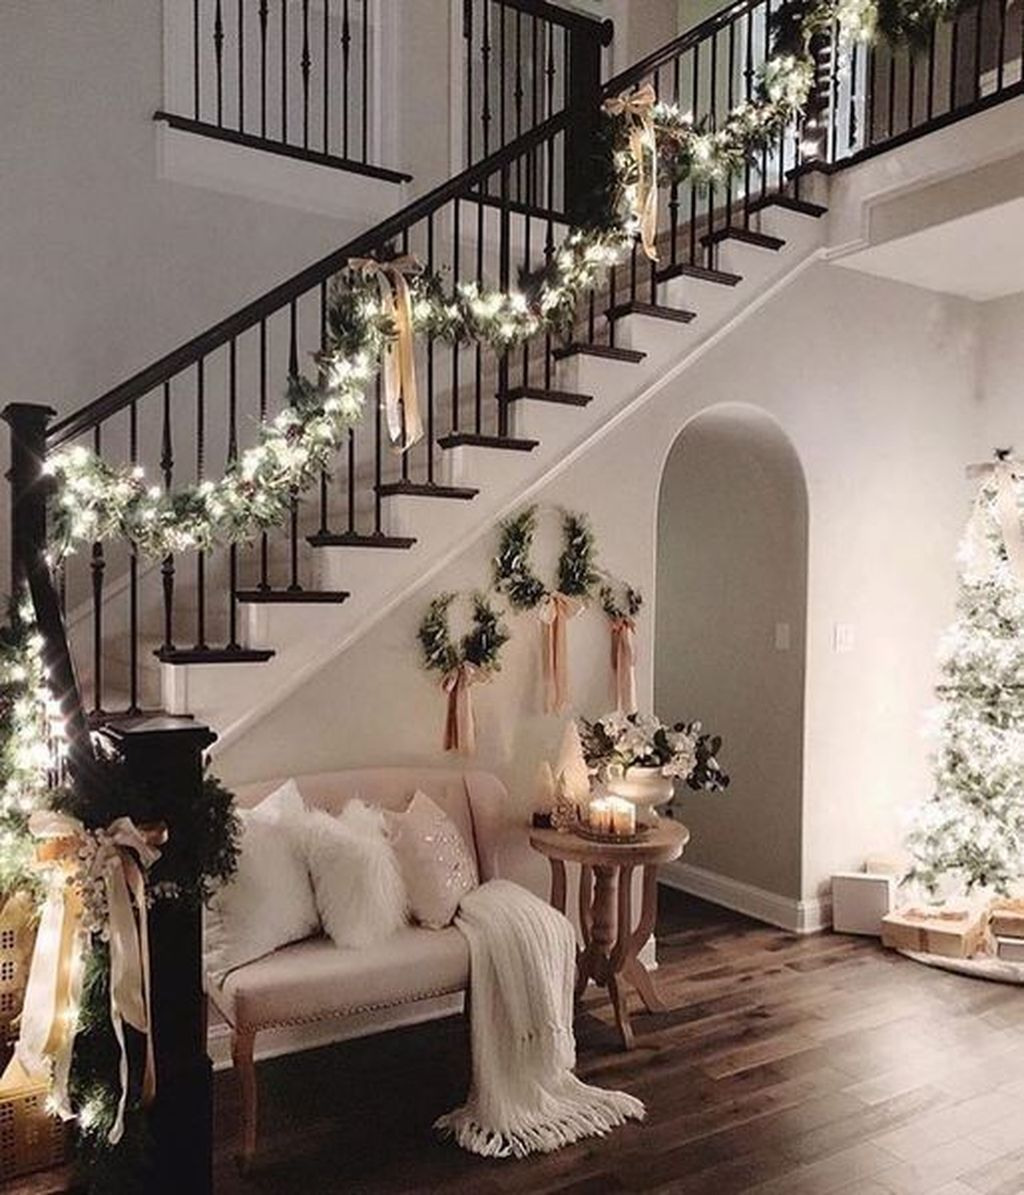 Fabulous Winter Home Decor Ideas You Should Copy Now 18